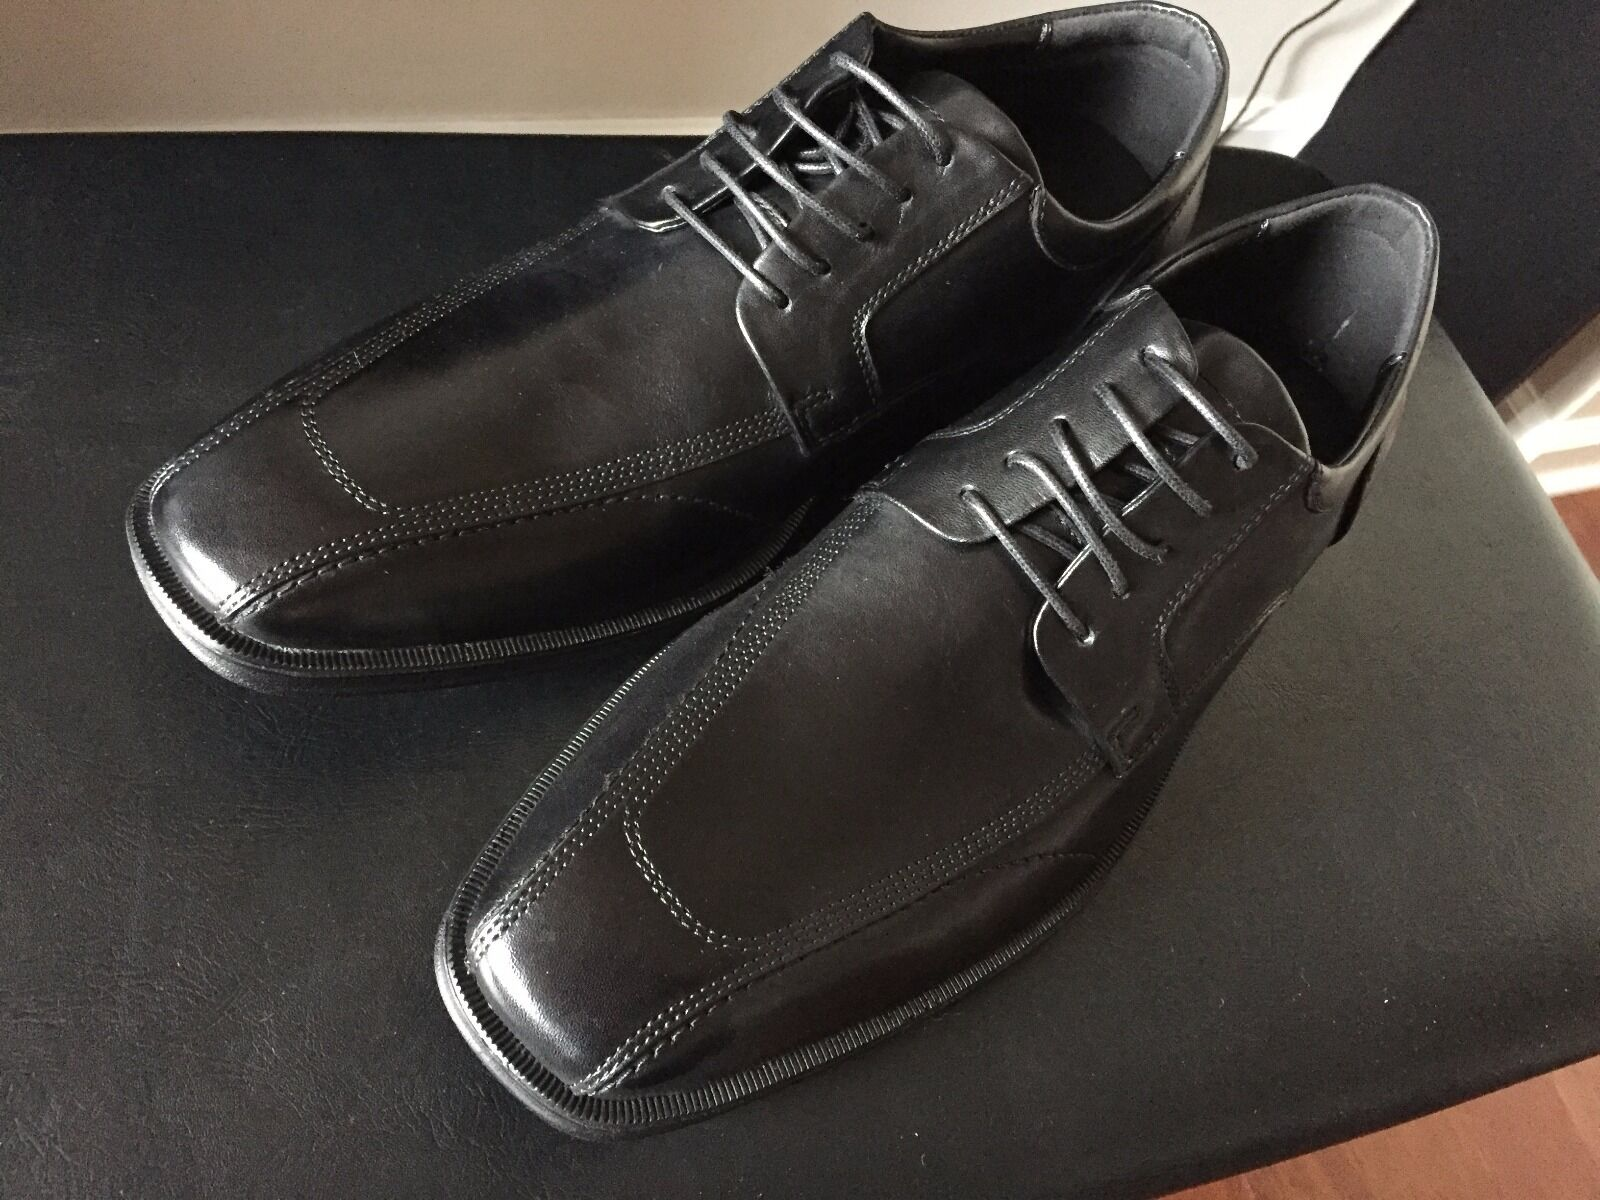 Kenneth Cole REACTION Men's Bill ARD Hall LE Oxford Black 9.5 M US Leather